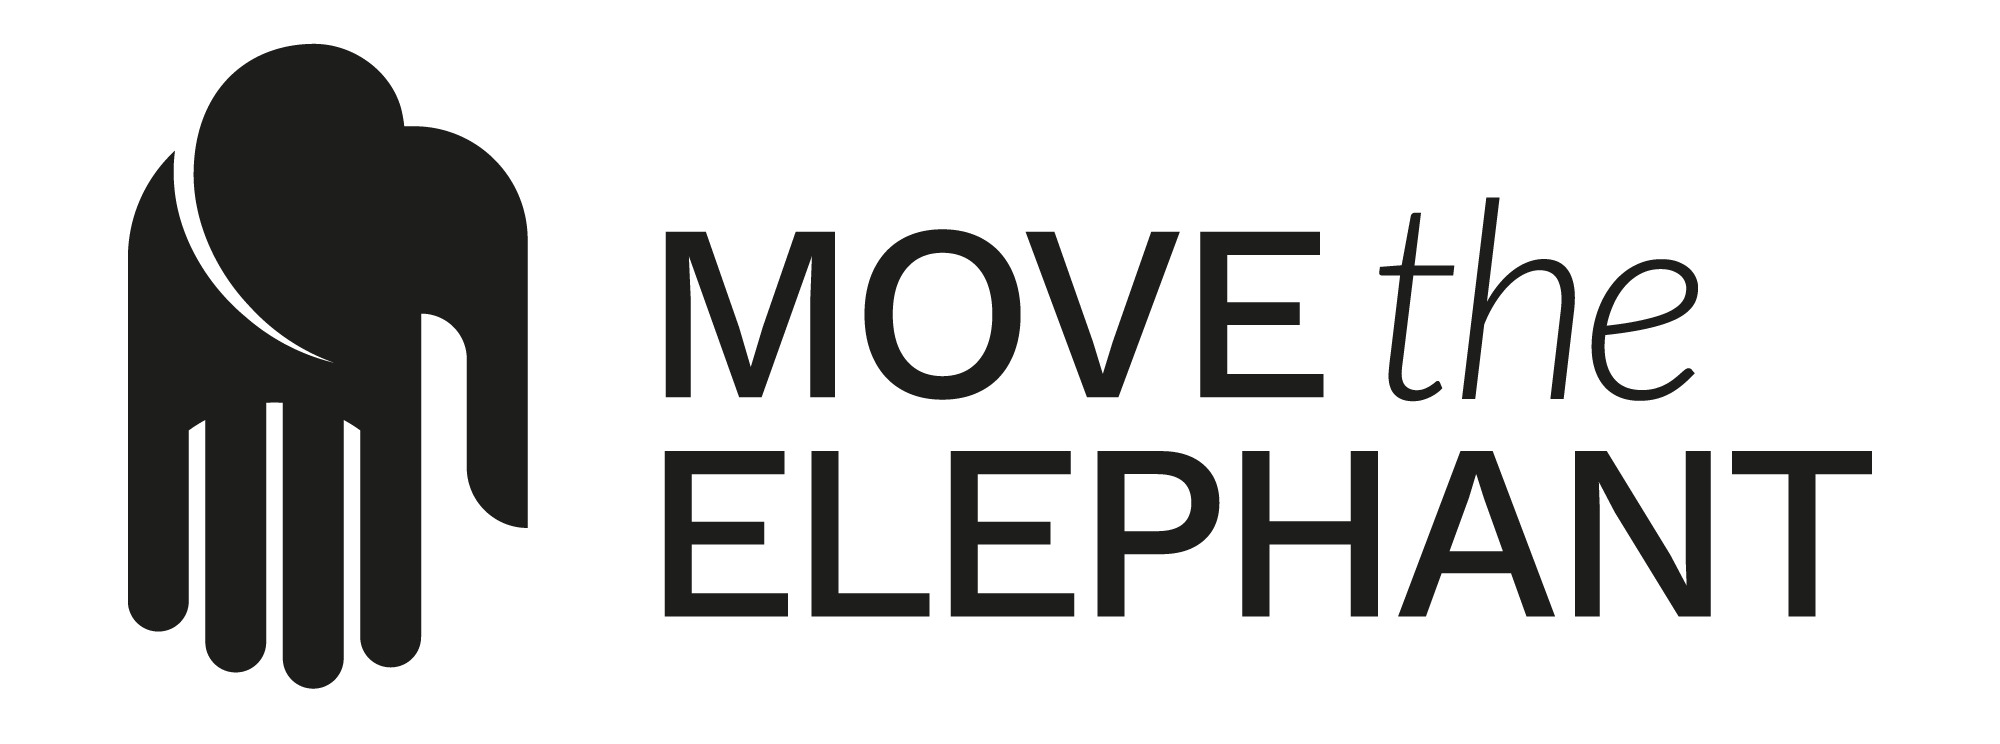 Move_the_elephant_logo_DEF.png